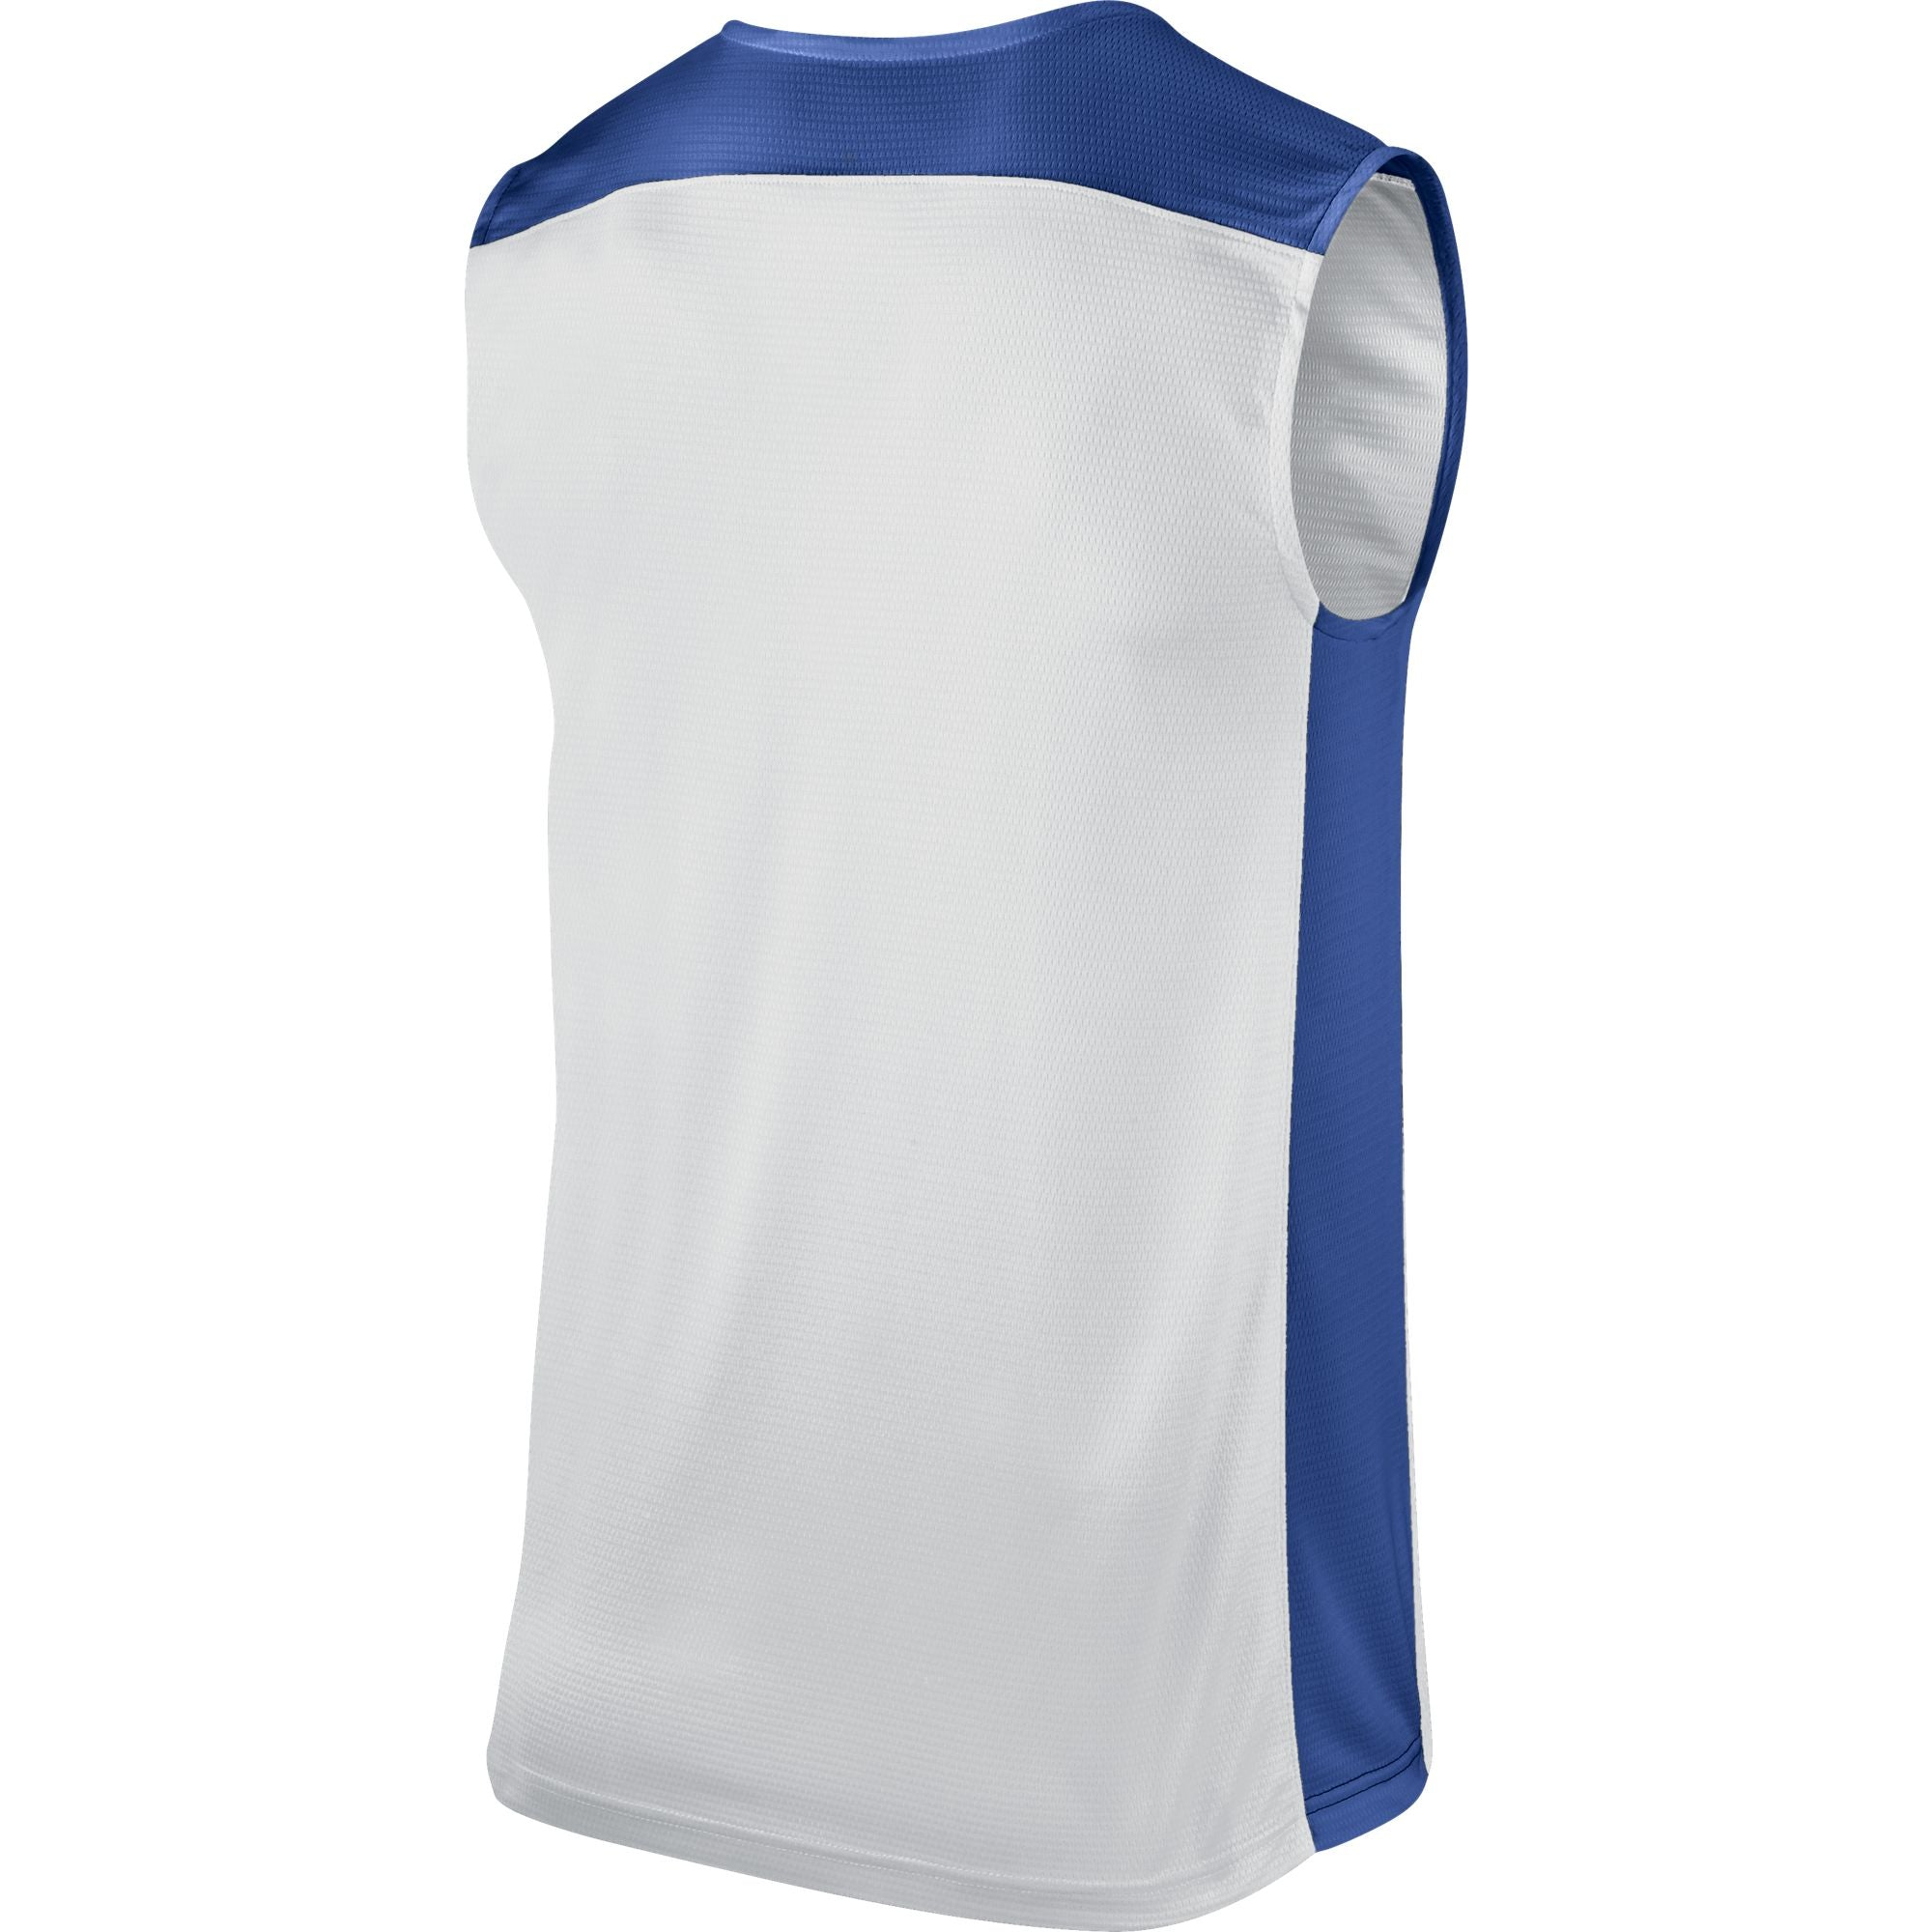 Nike Basketball Post Up Sleeveless - White/Game Royal